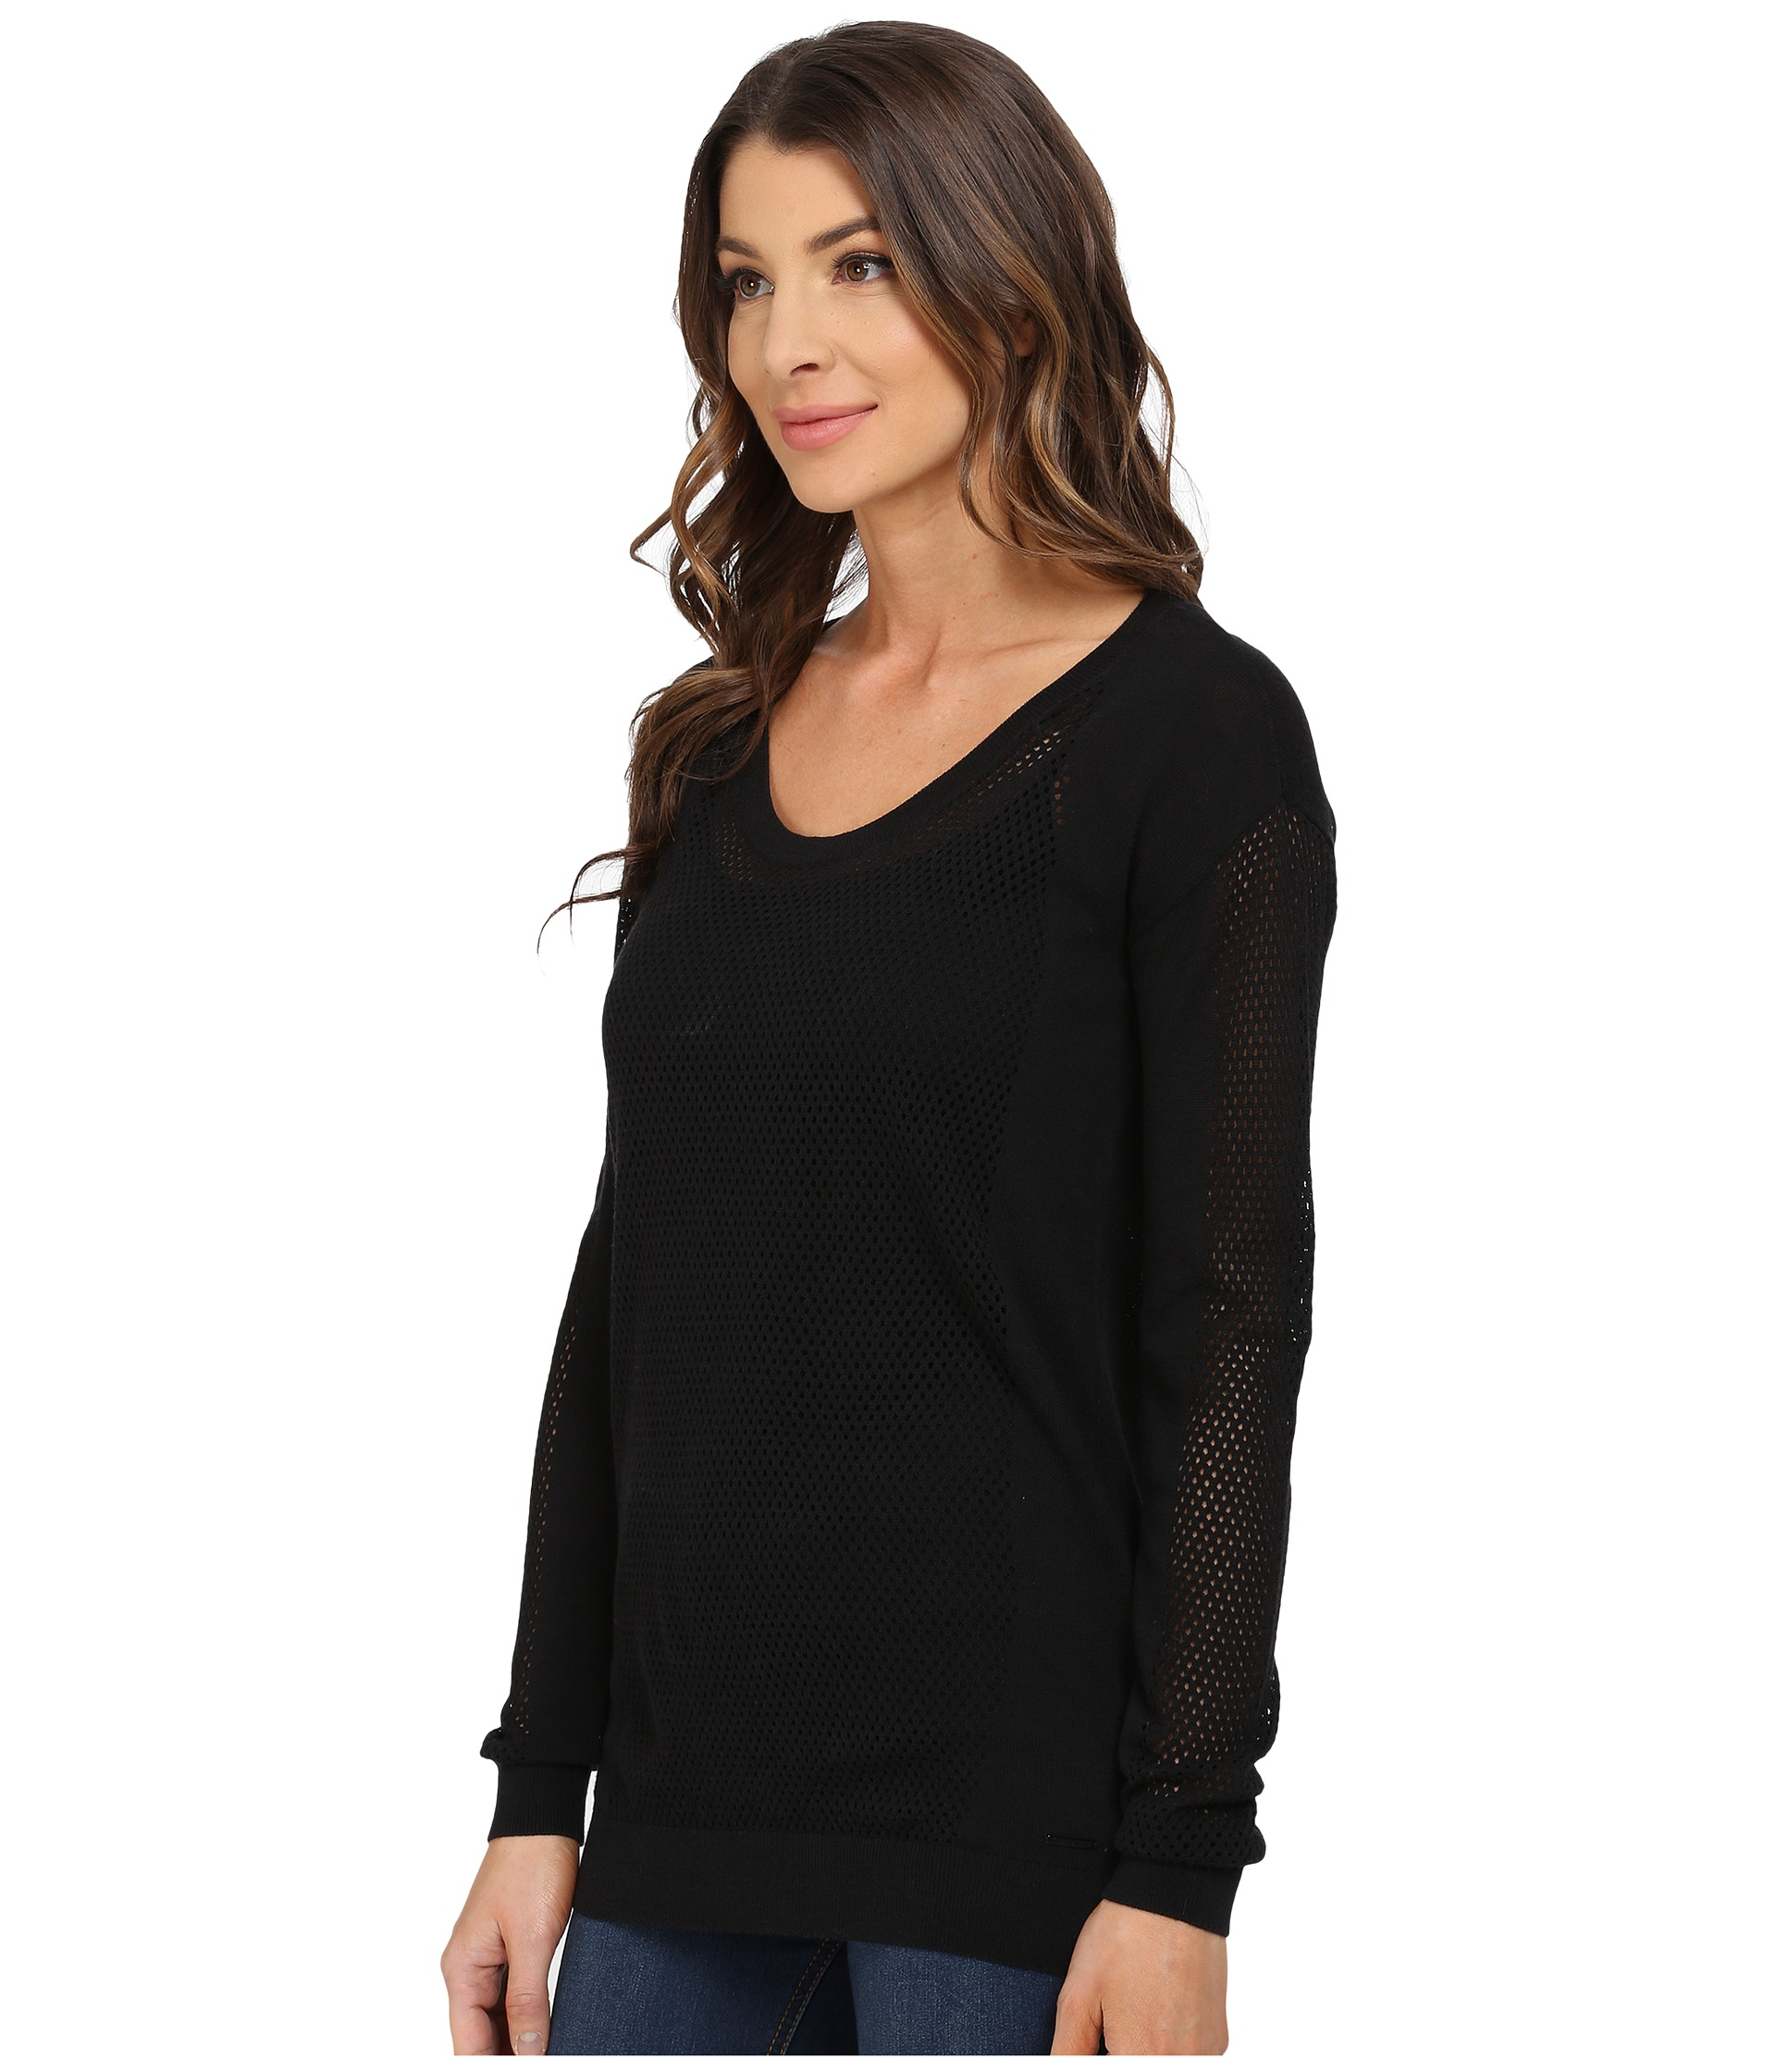 Calvin klein jeans Modern Mesh Crew Neck Sweater in Black | Lyst